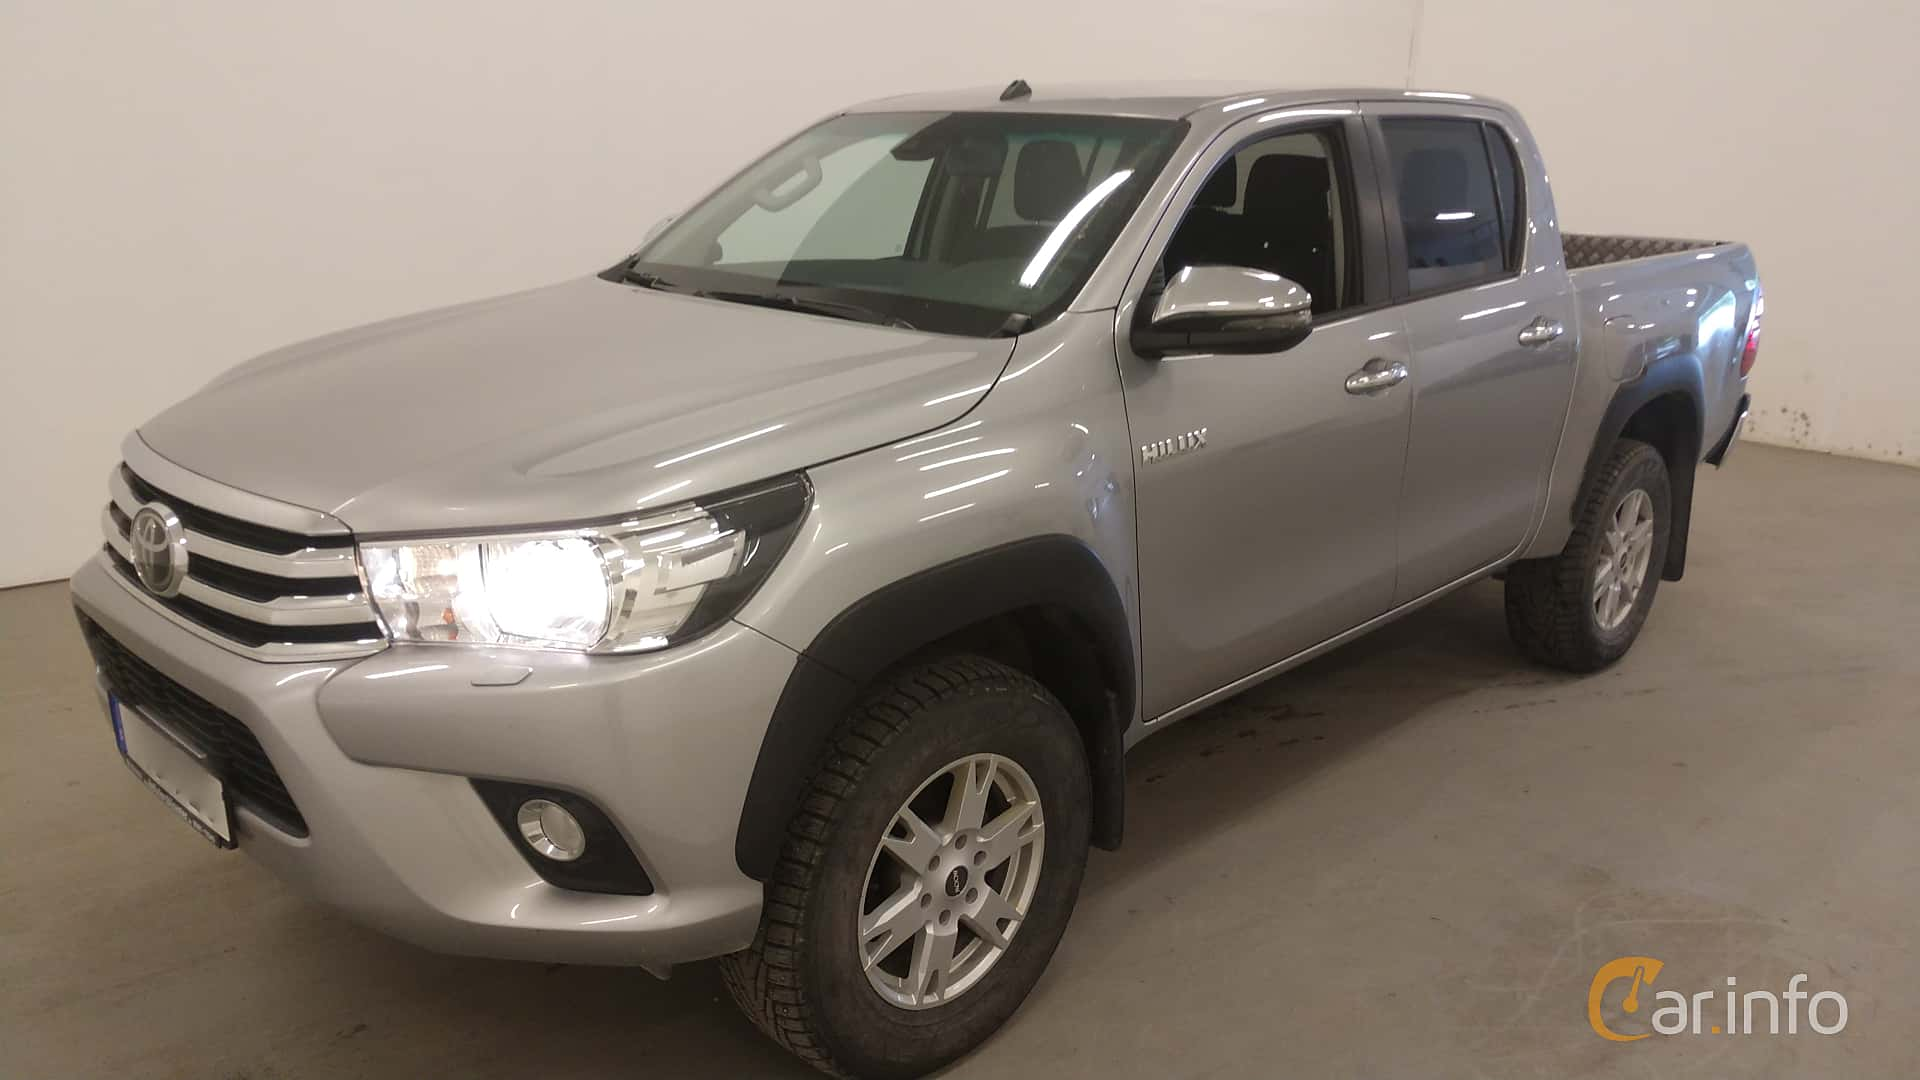 Front/Side  of Toyota Hilux Double Cab 2.4 AWD Automatic, 150ps, 2018